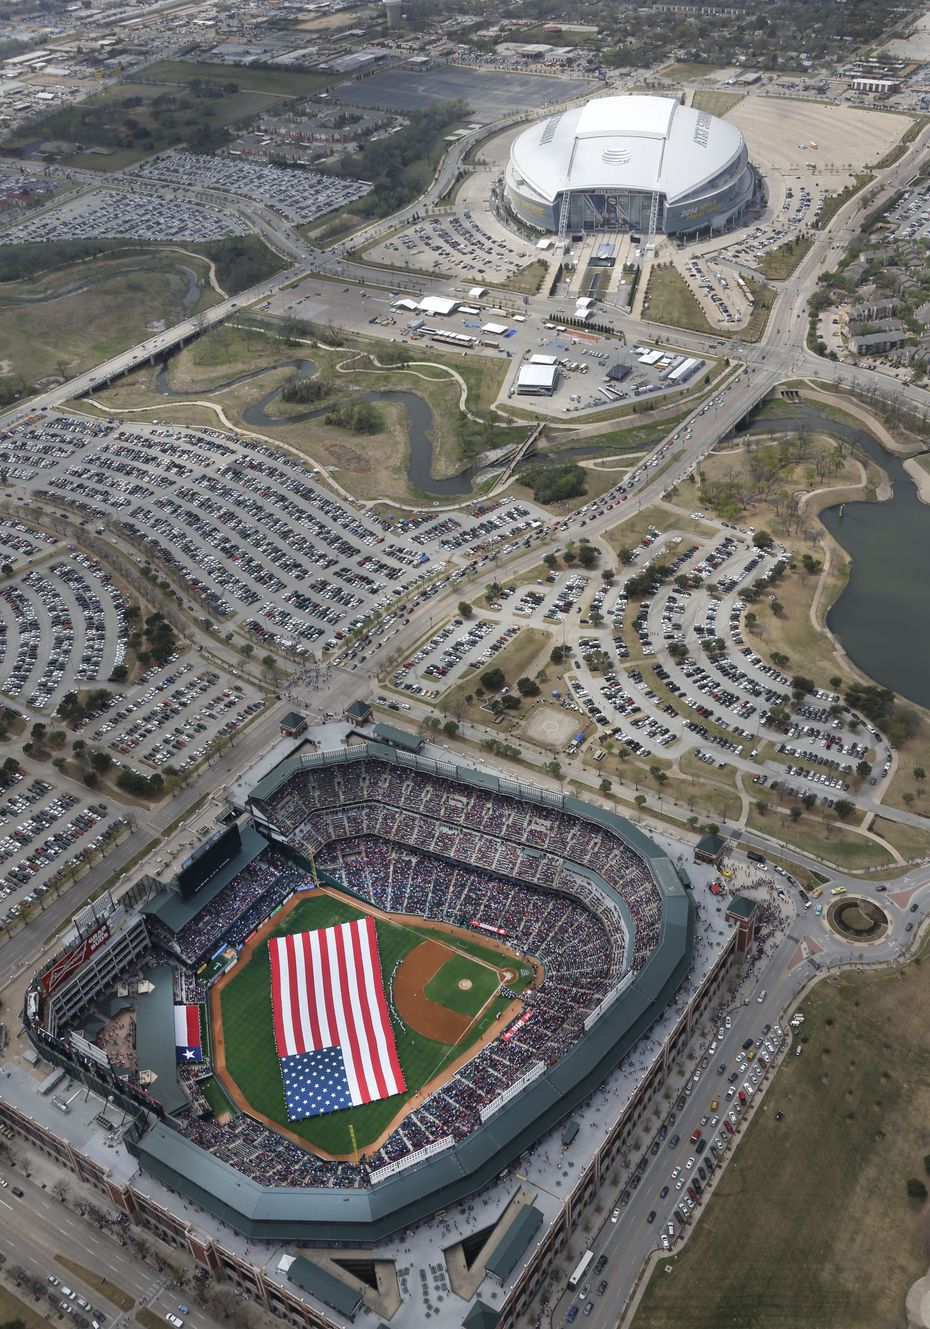 In the 1990s and 2000s, Arlington helped fund stadiums for the Rangers and Dallas Cowboys. While the venues are top-notch, they haven't created development nearby.